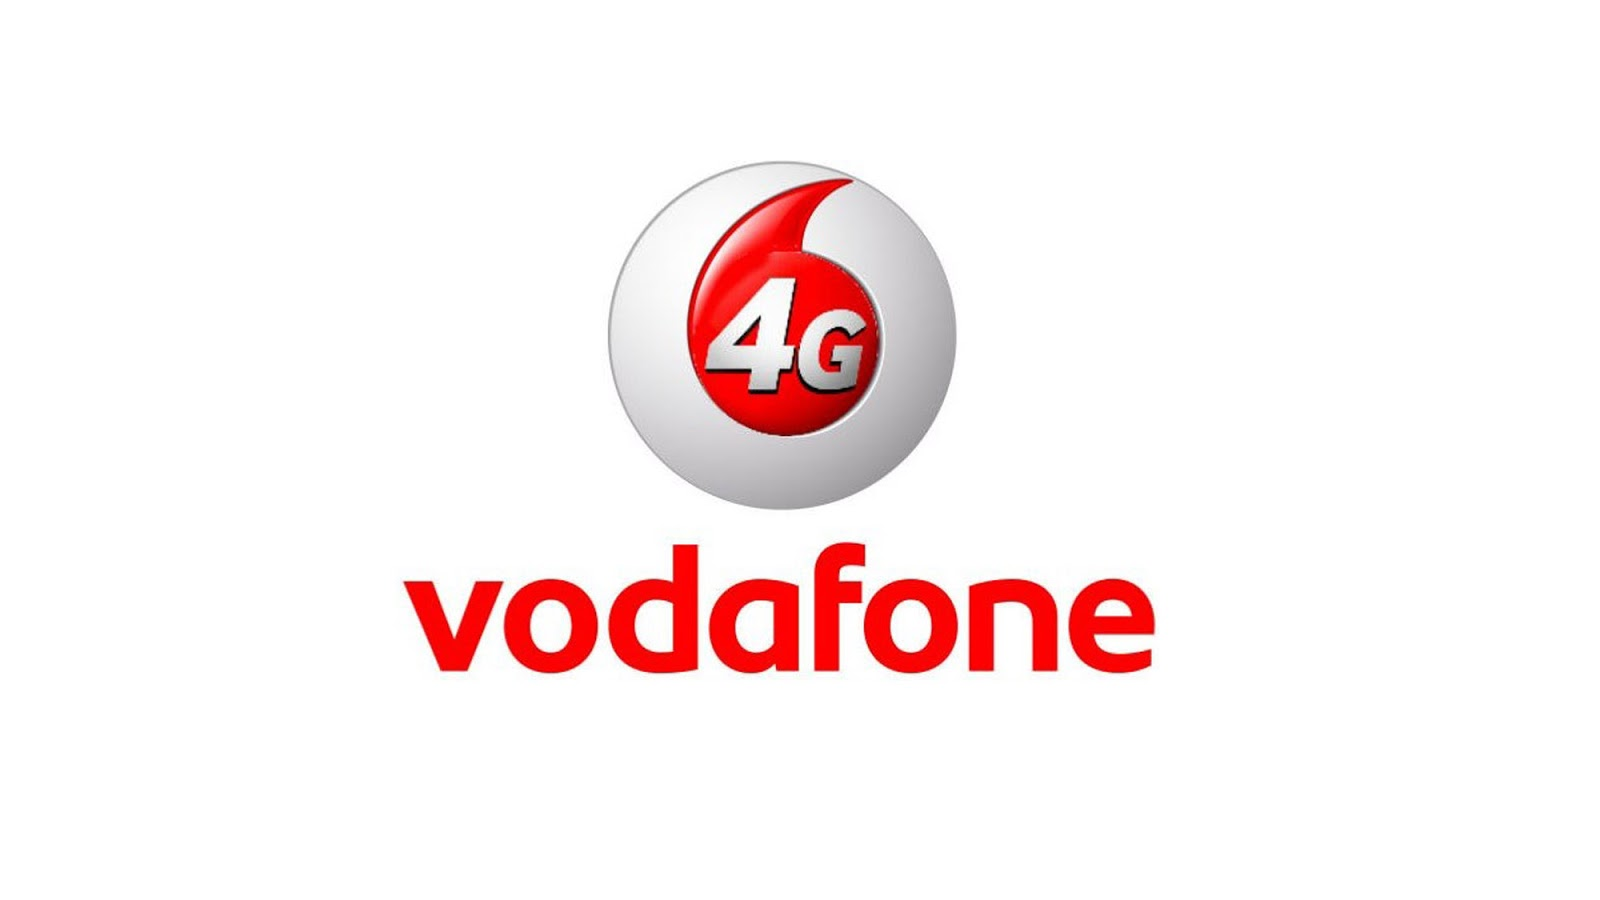 vodafone offers 10 gb 4g data at price of 1gb for 3 months